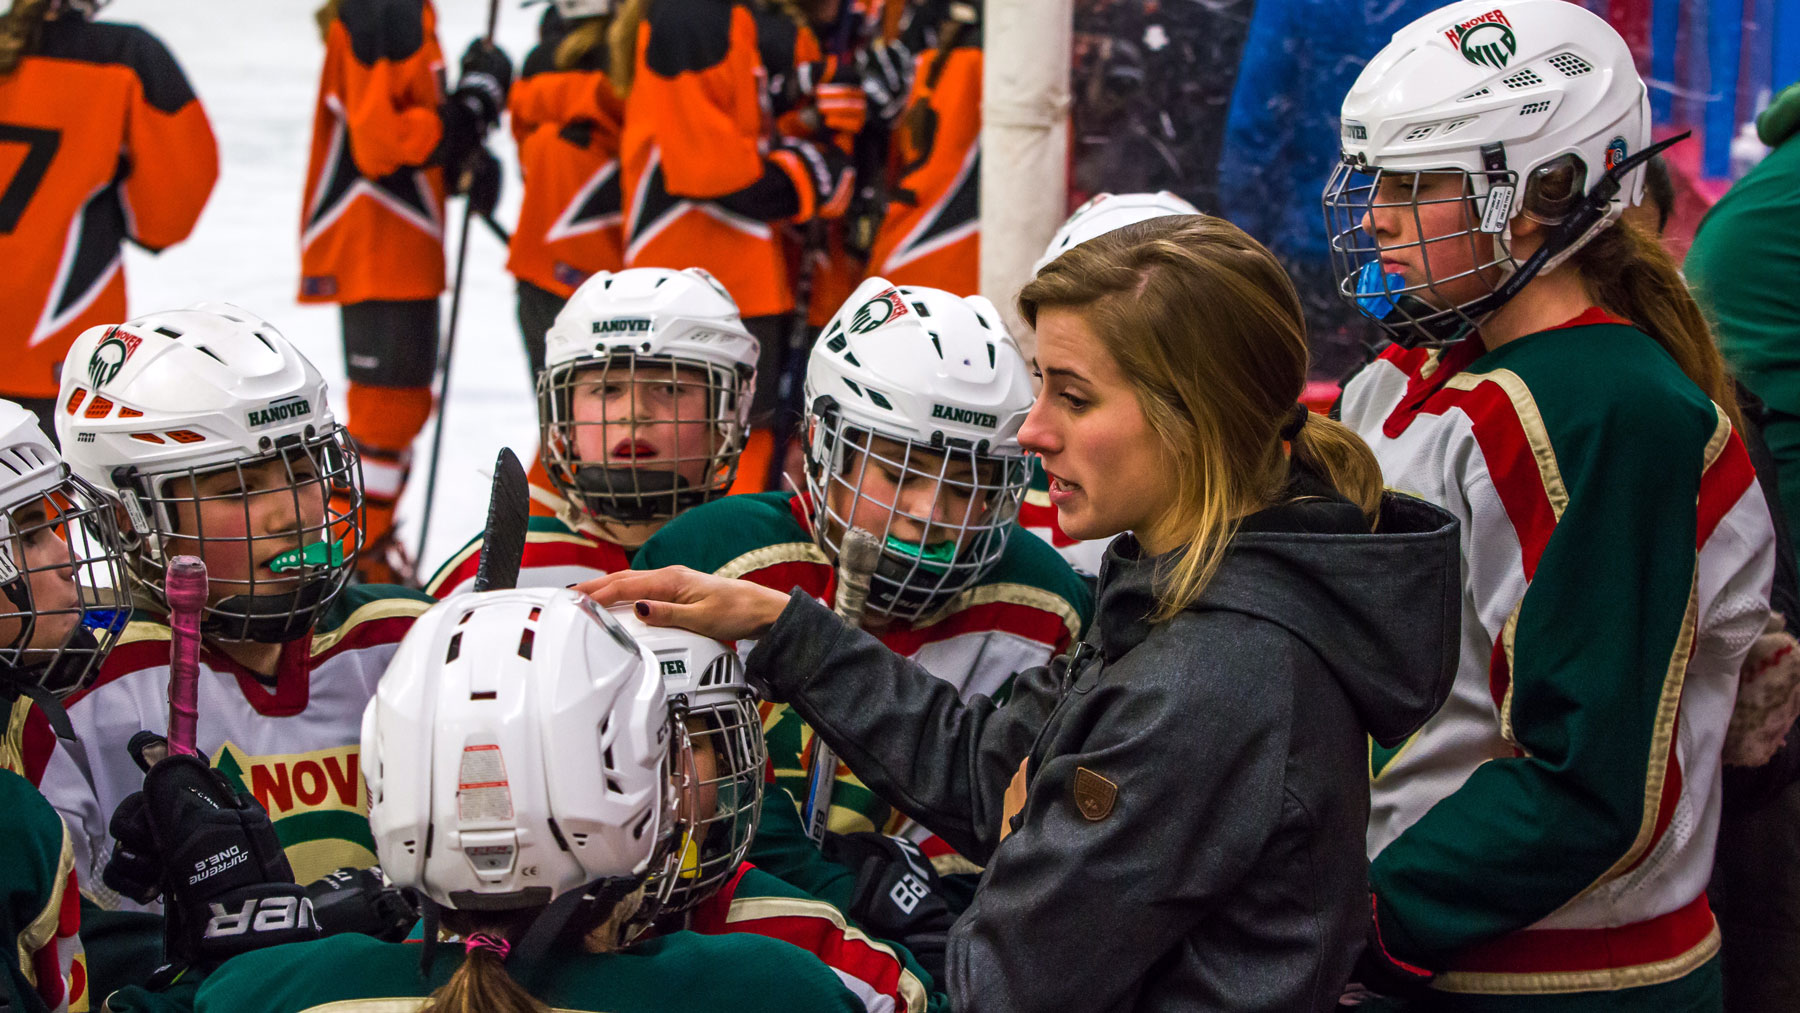 Lindsay Holdcroft '21 coaches the U12 girls' hockey team.